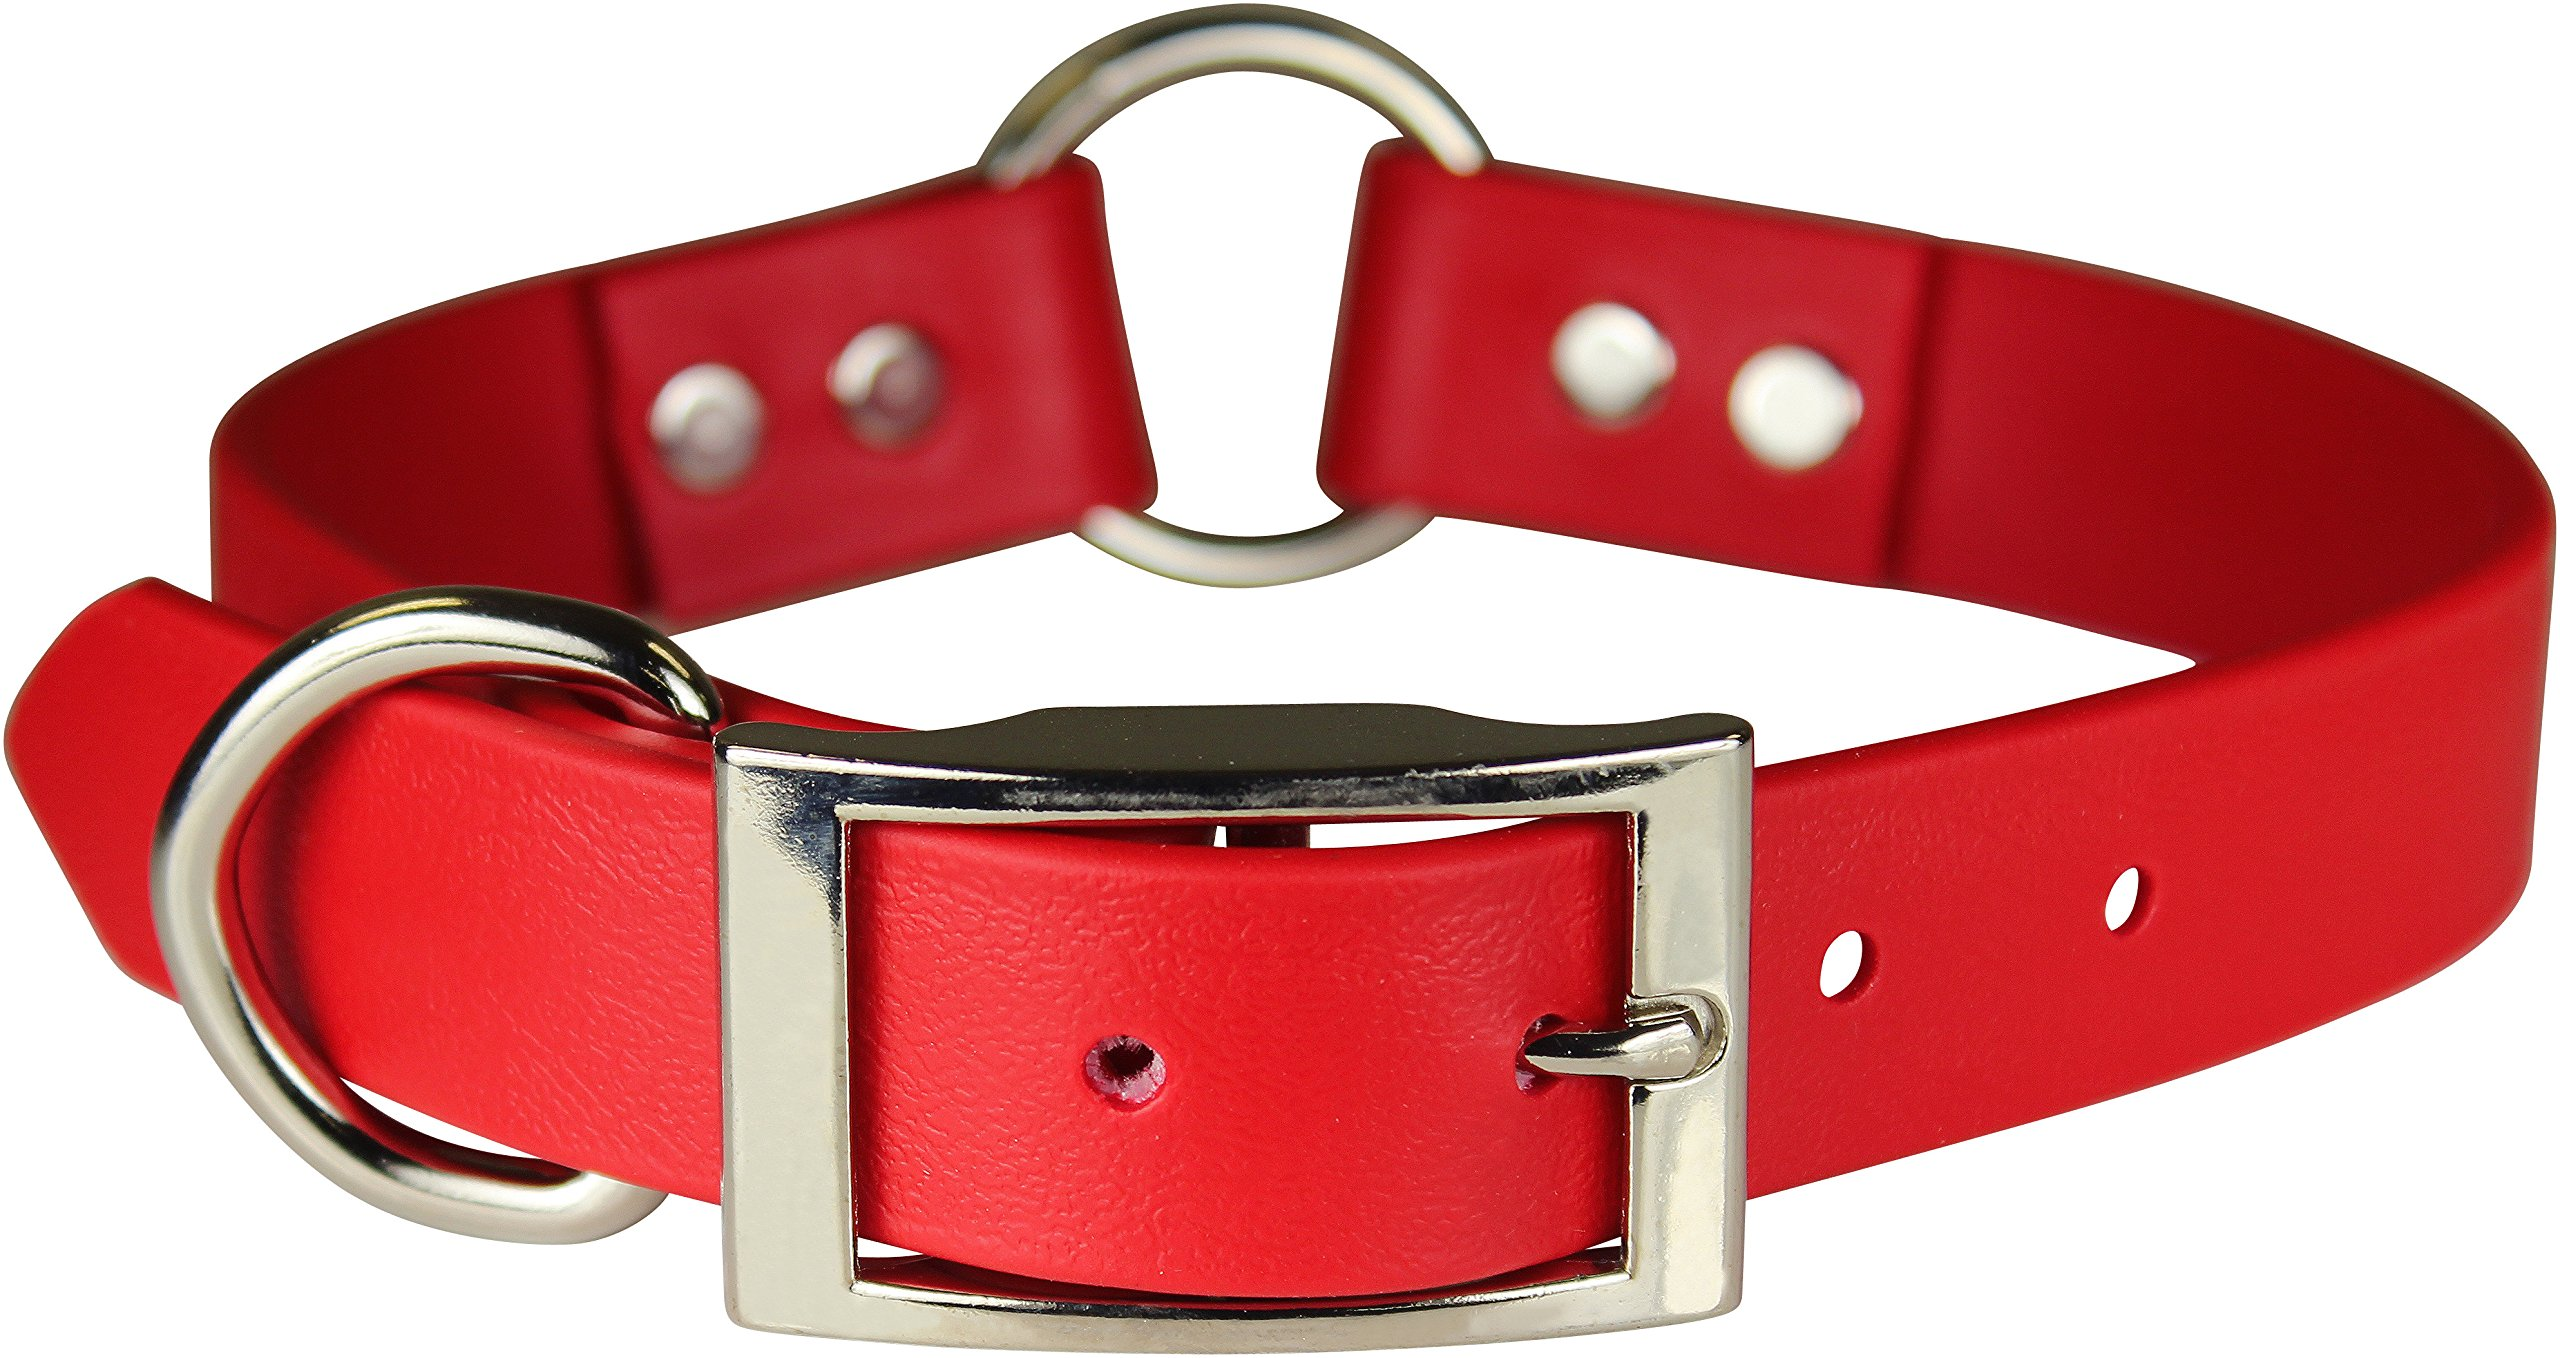 OmniPet Zeta Ring in Center with Dee Dog Collar, 1 x 24, Red